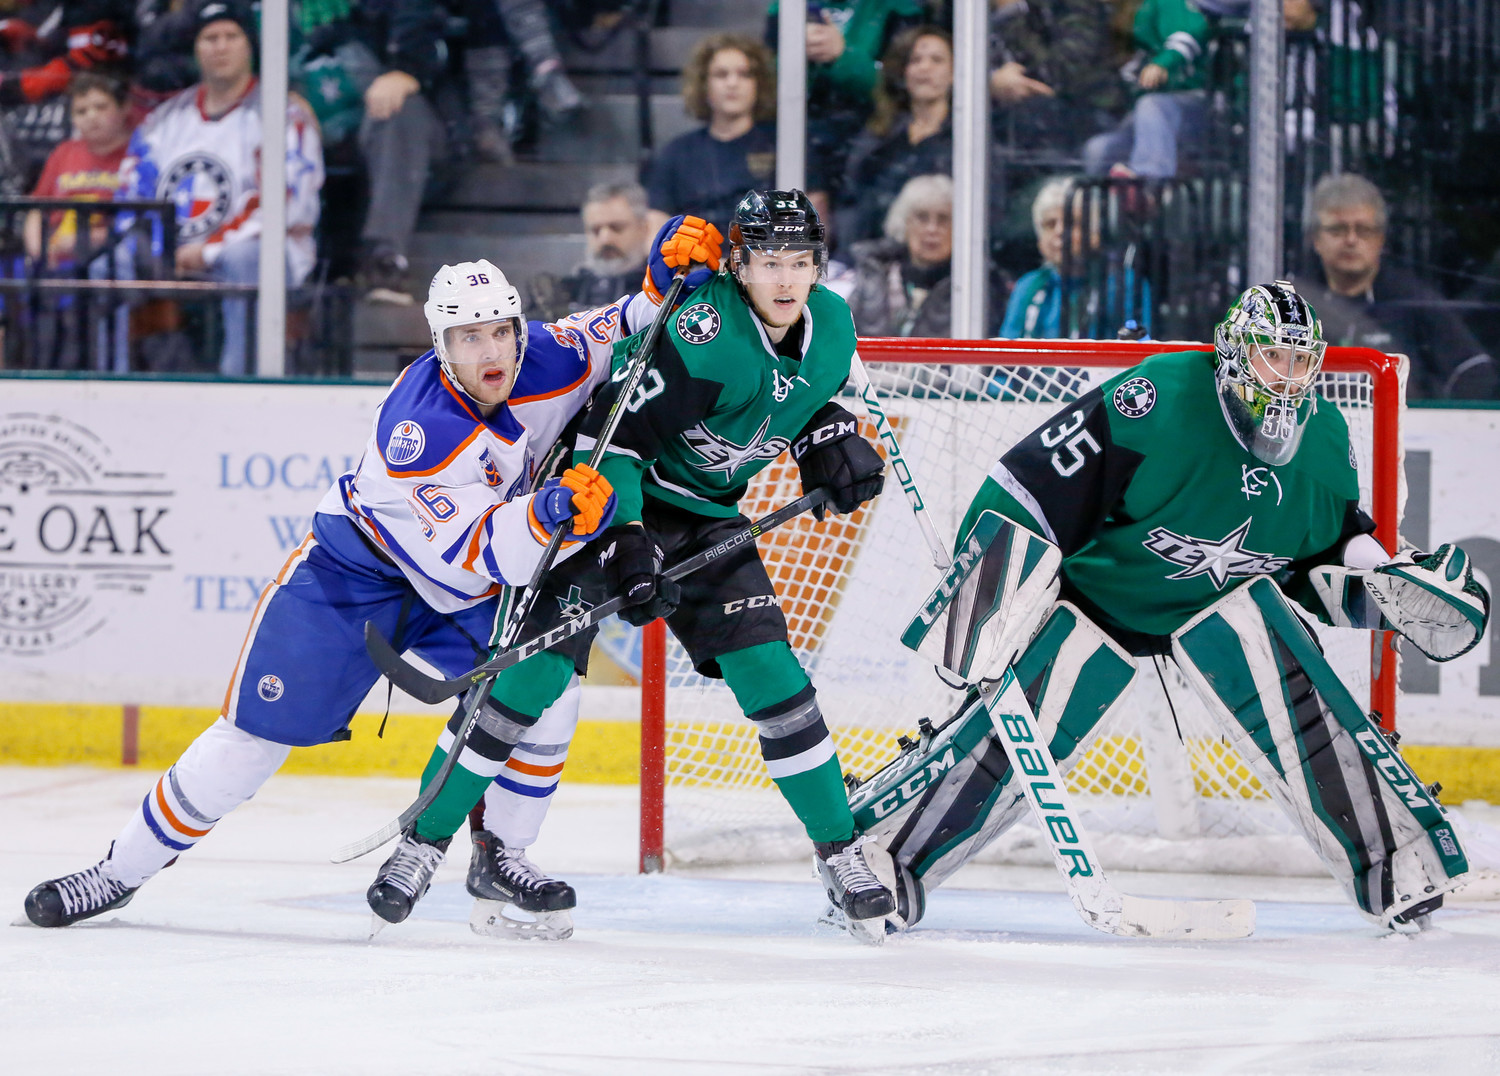 The Stars lost to the Bakersfield Condors 4-2 on Saturday night and have dropped five of their last six games.